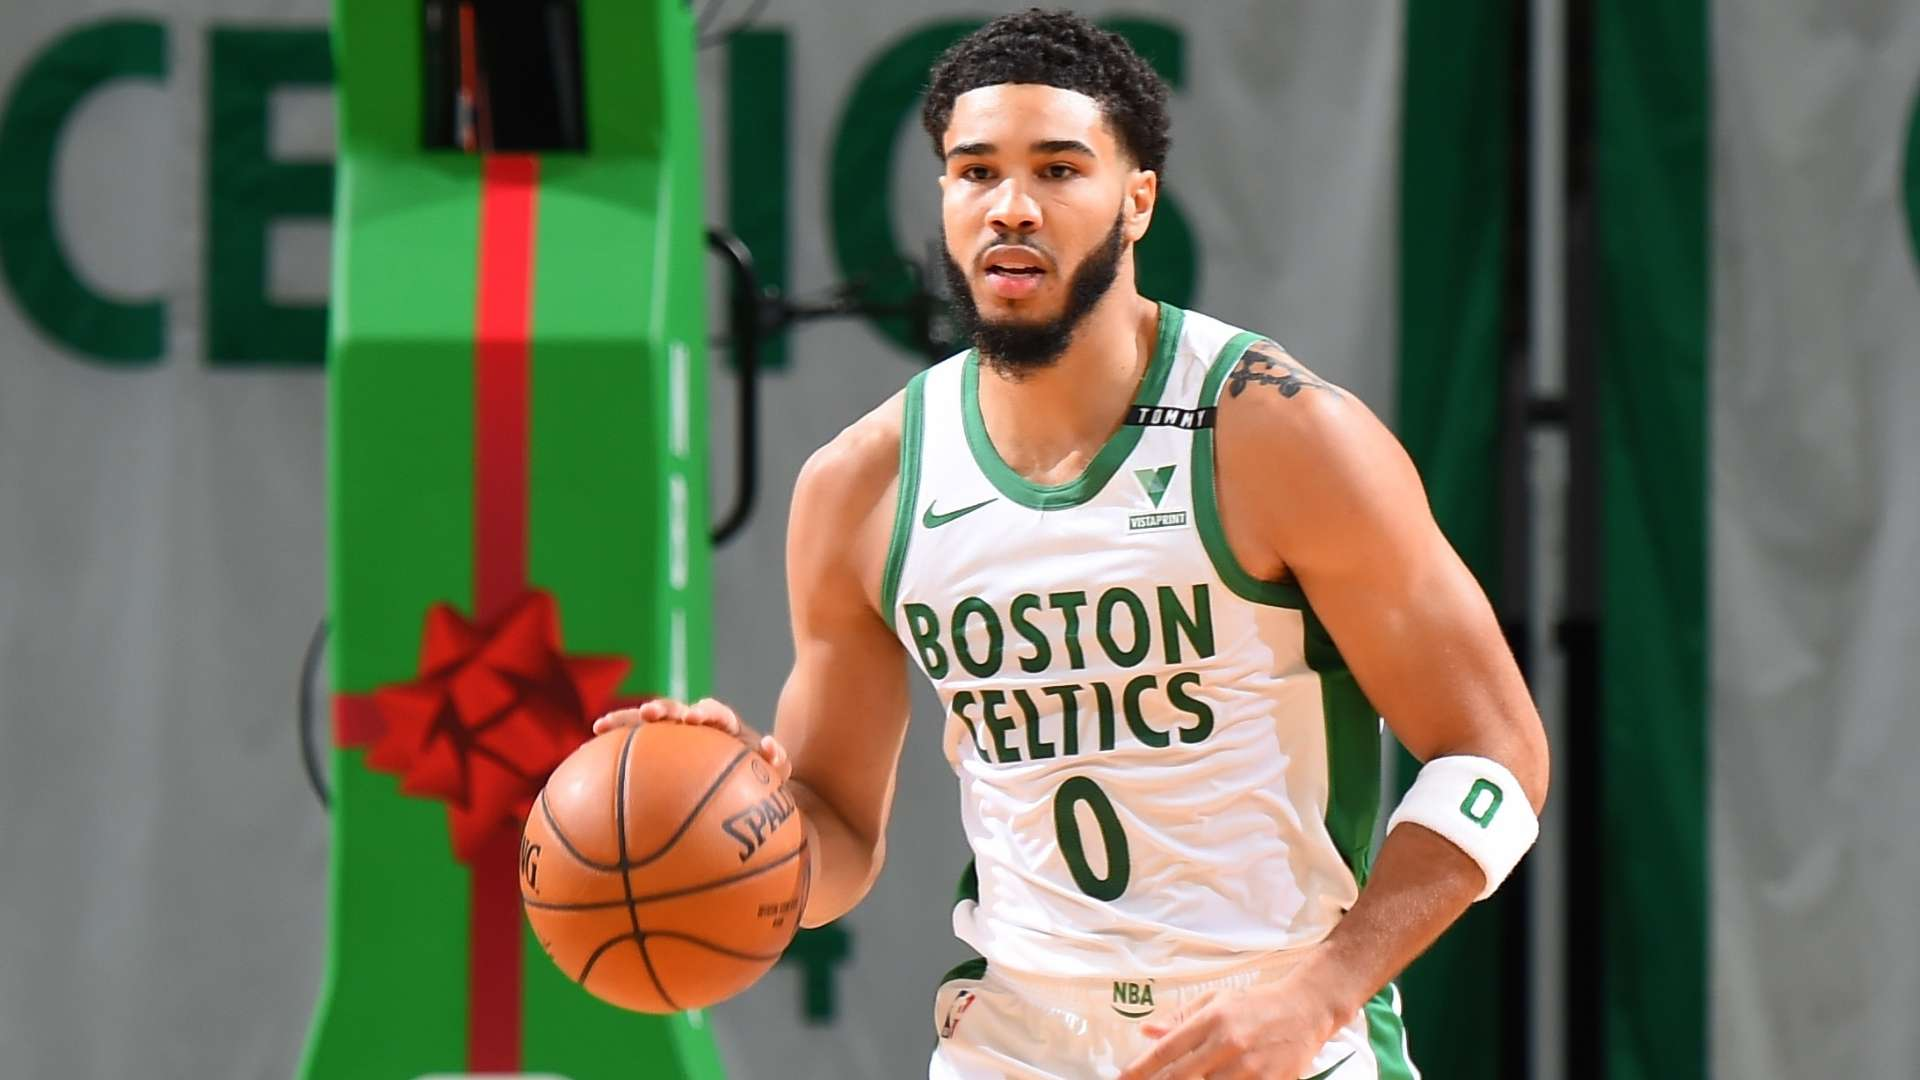 Eltics Uniform Christmas 2021 2020 Nba Christmas Teams Debut New Uniforms And Players Don Special Sneakers For The Holiday Nba Com India The Official Site Of The Nba